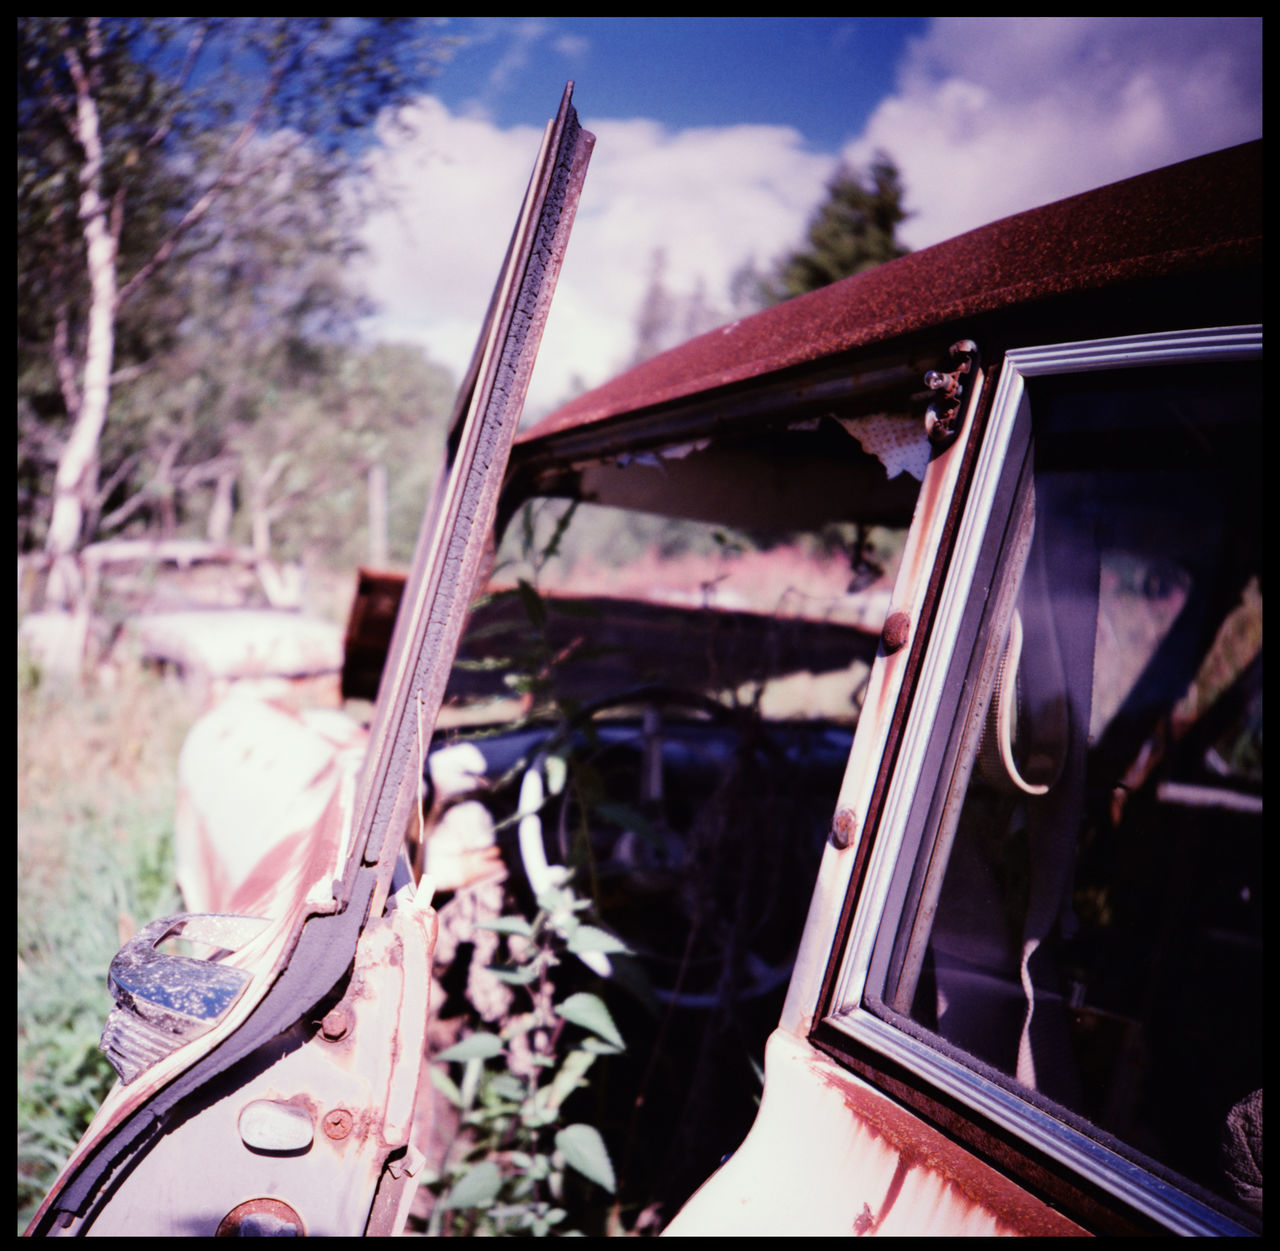 The beauty of decay in the abandonded car cemetery of Båstnäs Abandonded American Cars Apocalypse Art Båstnäs Båstnäs Car Cemetery Båstnäs Töcksfors Car Cemetery Forrest Lomography Metal And Rust Metal In The Forrest No People Powerful Nature Rust And Cars Scandinavia Sweden Sweden Forrest Sweden Nature Travel Trees In Cars Trip Vintage Car Vintage Cars Xpro